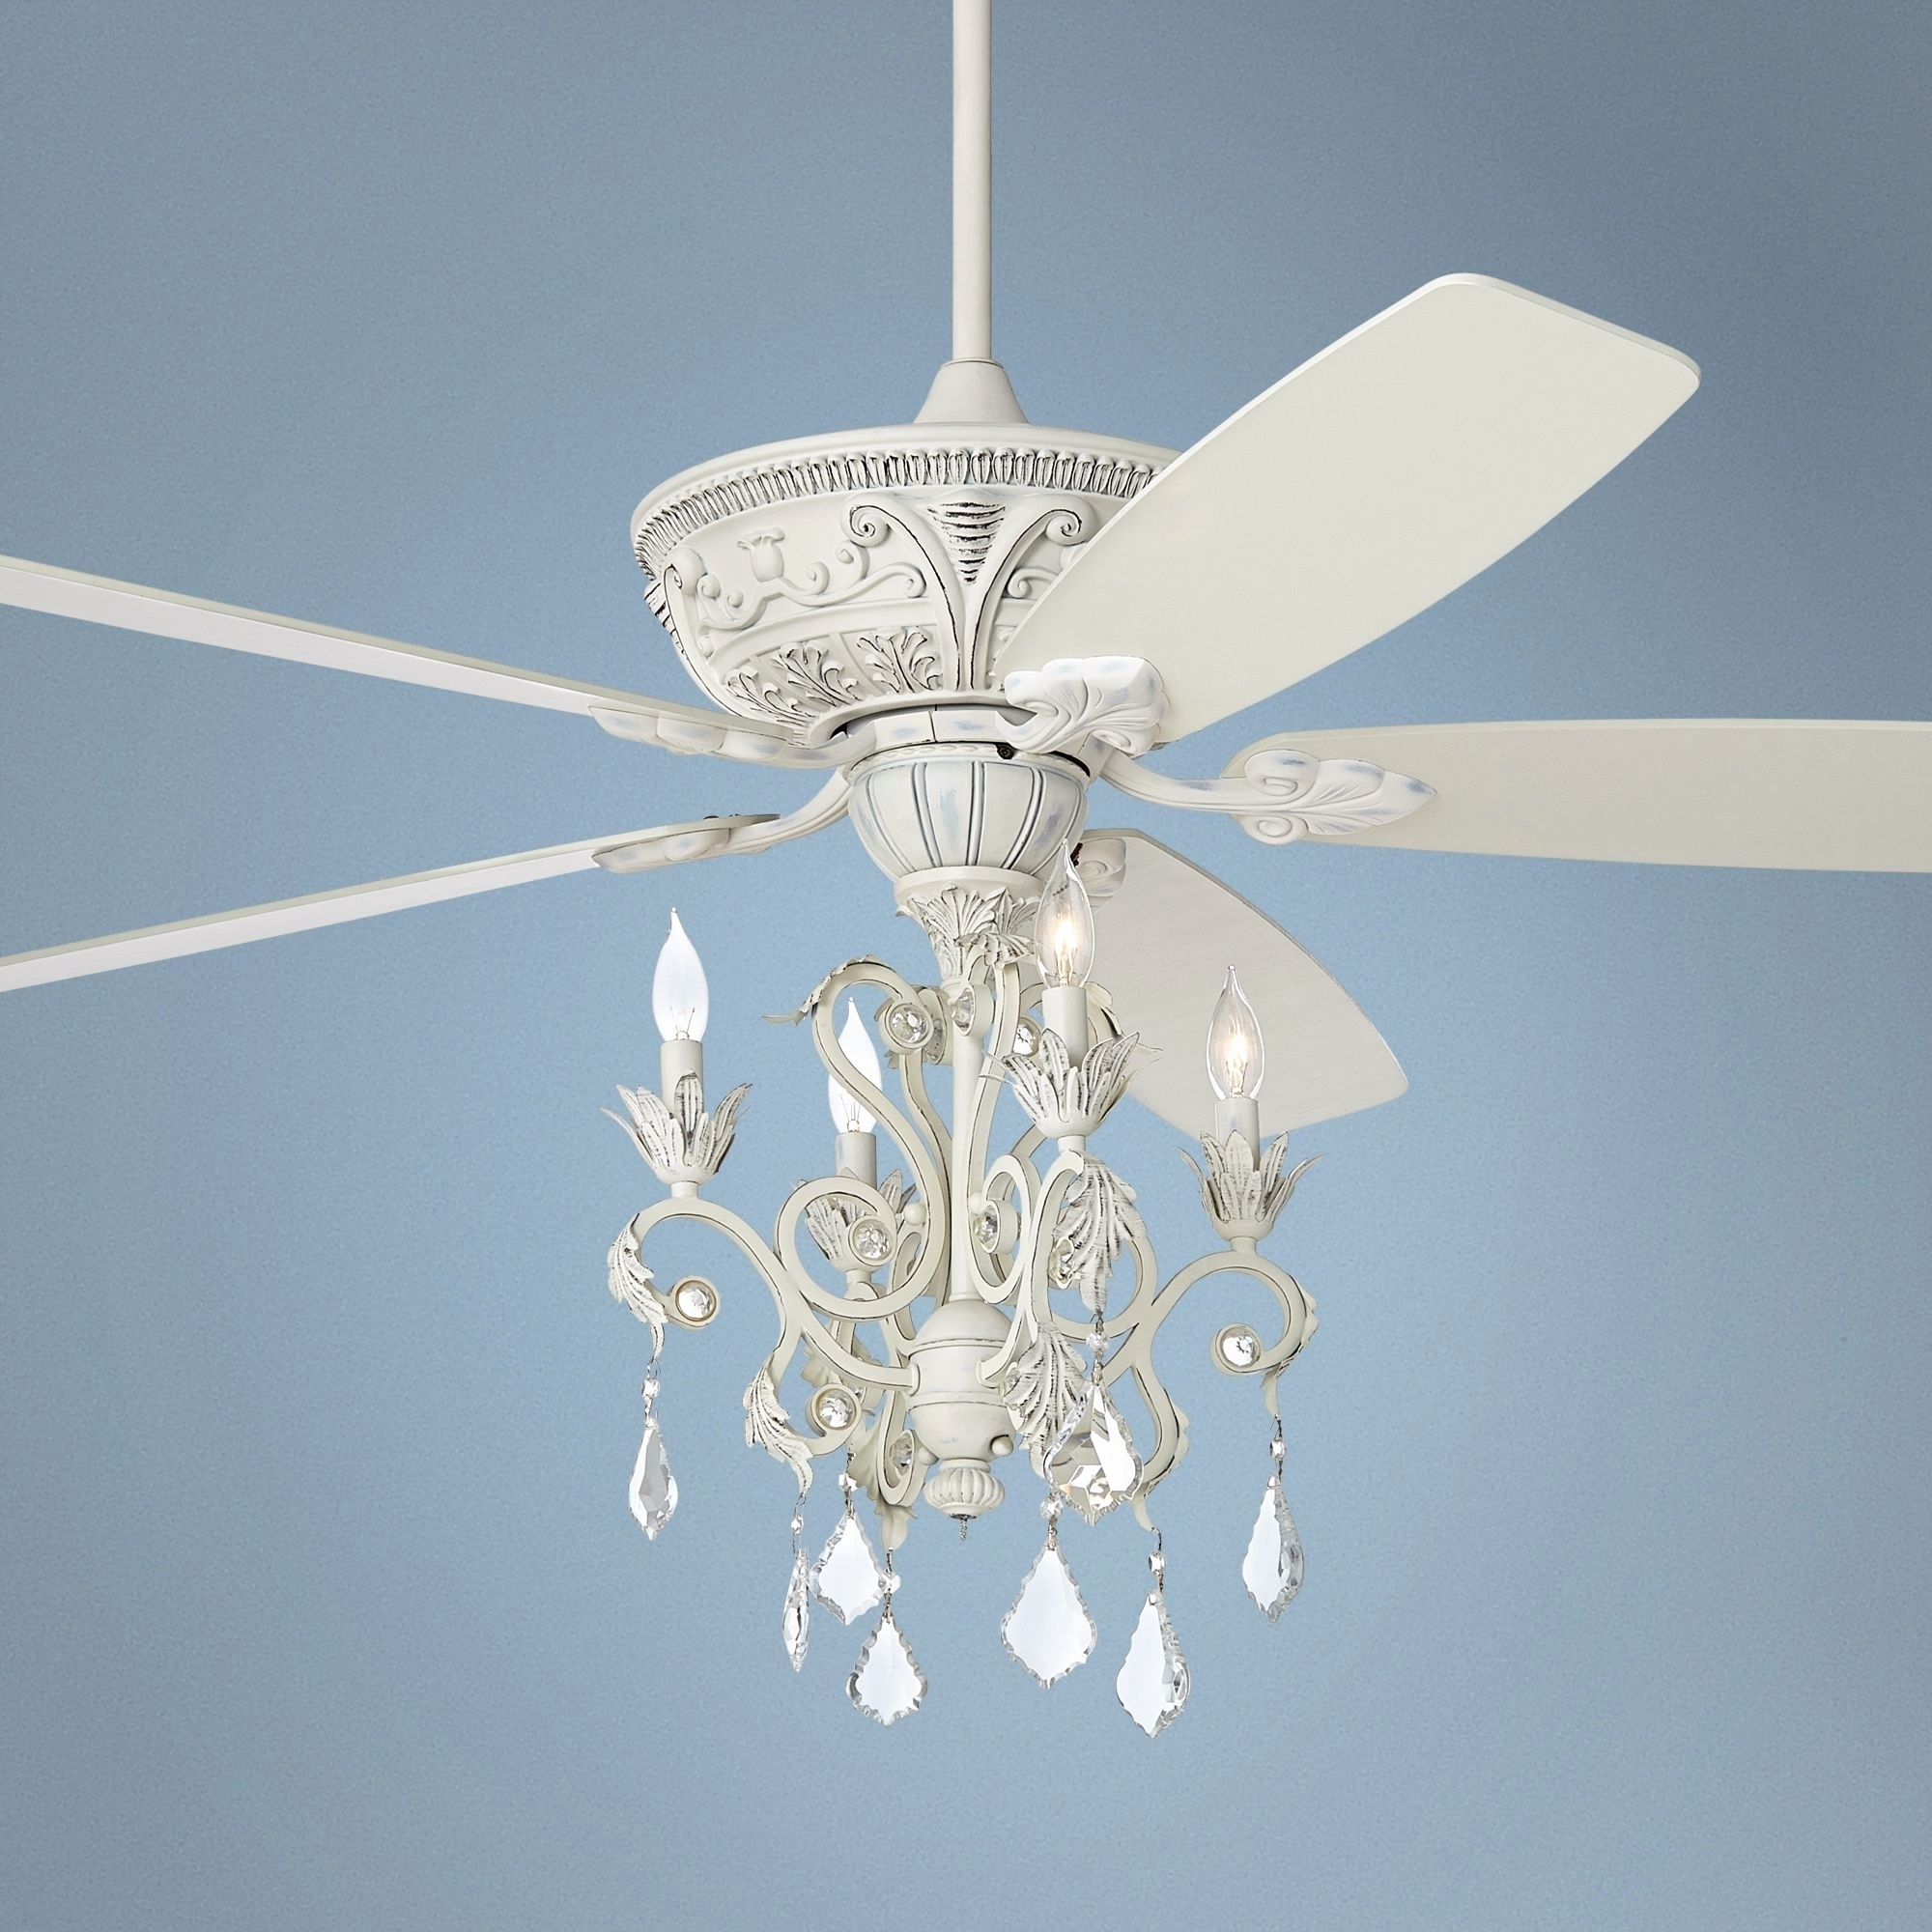 Awesome Ceiling Fan Chandelier Light Kit Unique Lamp Chandelier In 2017 Chandelier Light Fixture For Ceiling Fan (View 12 of 15)